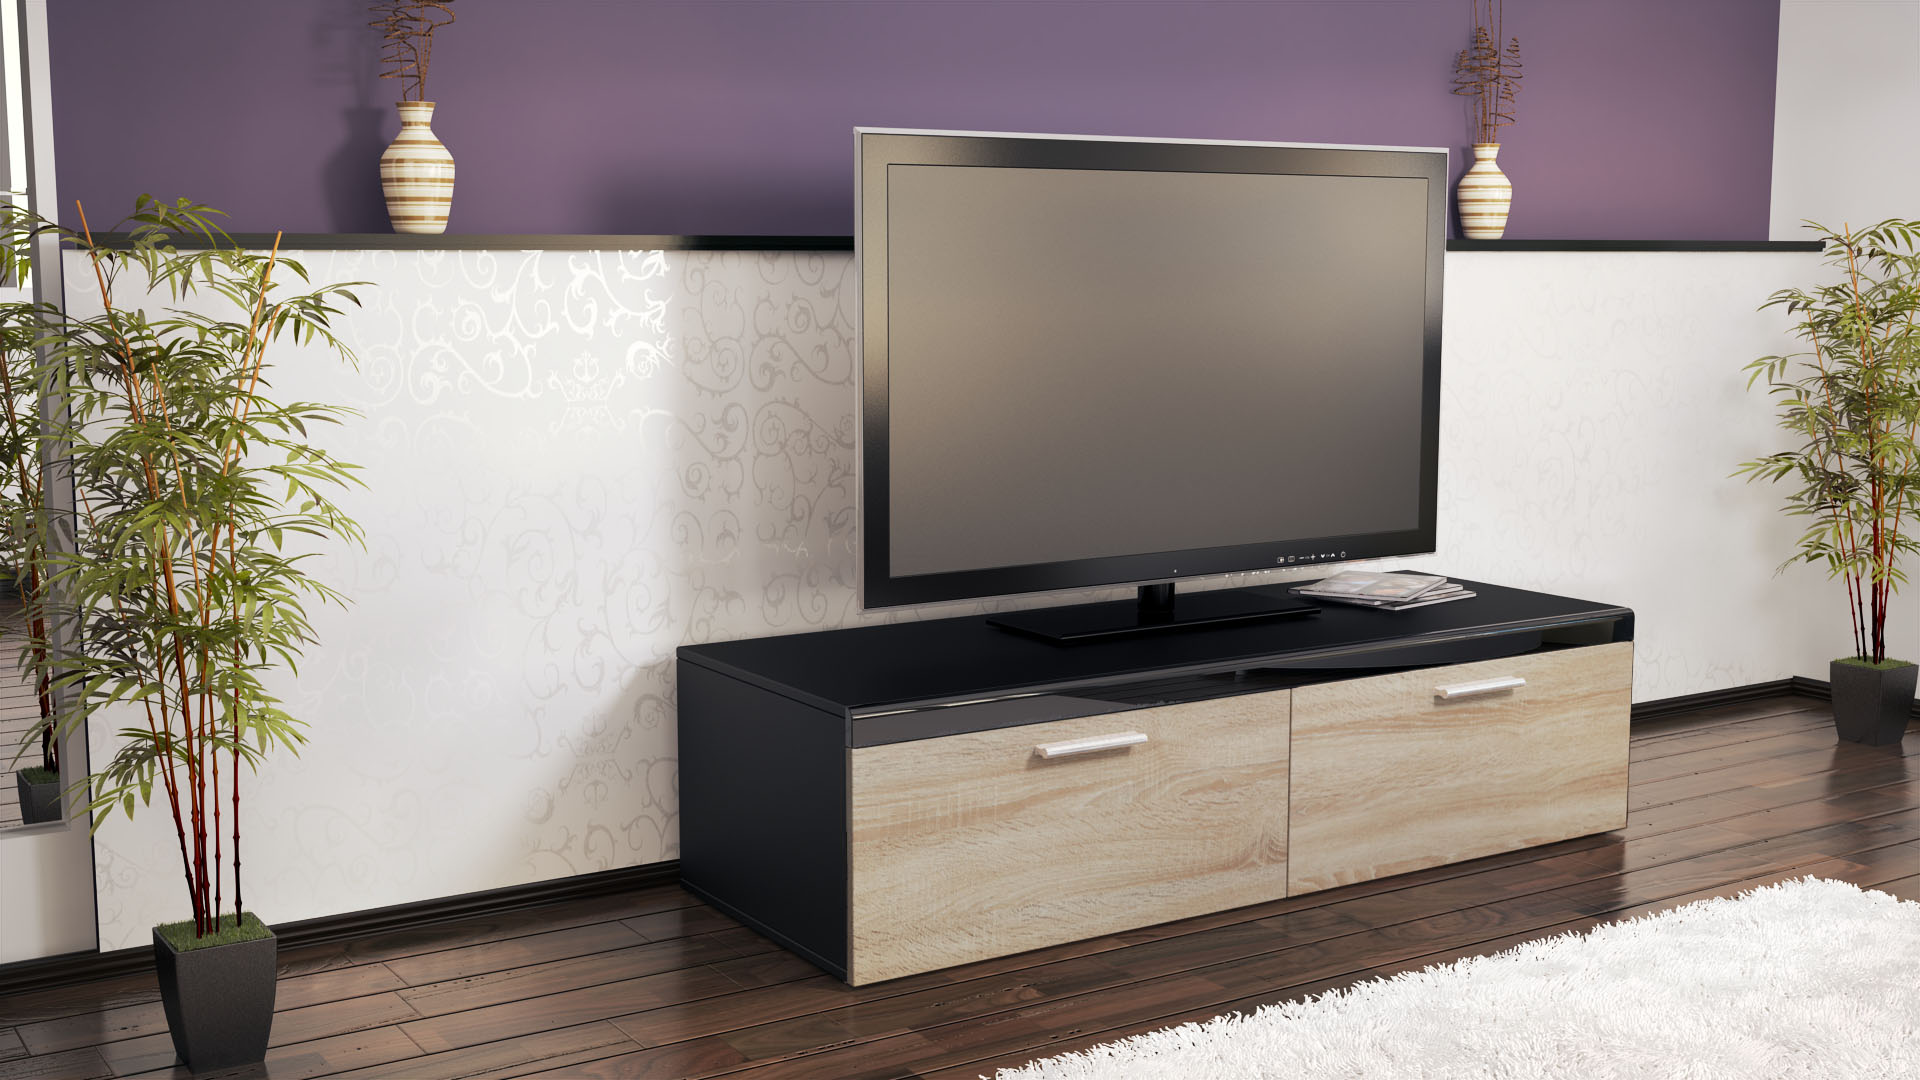 abverkauf tv lowboard board edelstahlgriff atlanta schwarz hochglanz naturt ne ebay. Black Bedroom Furniture Sets. Home Design Ideas